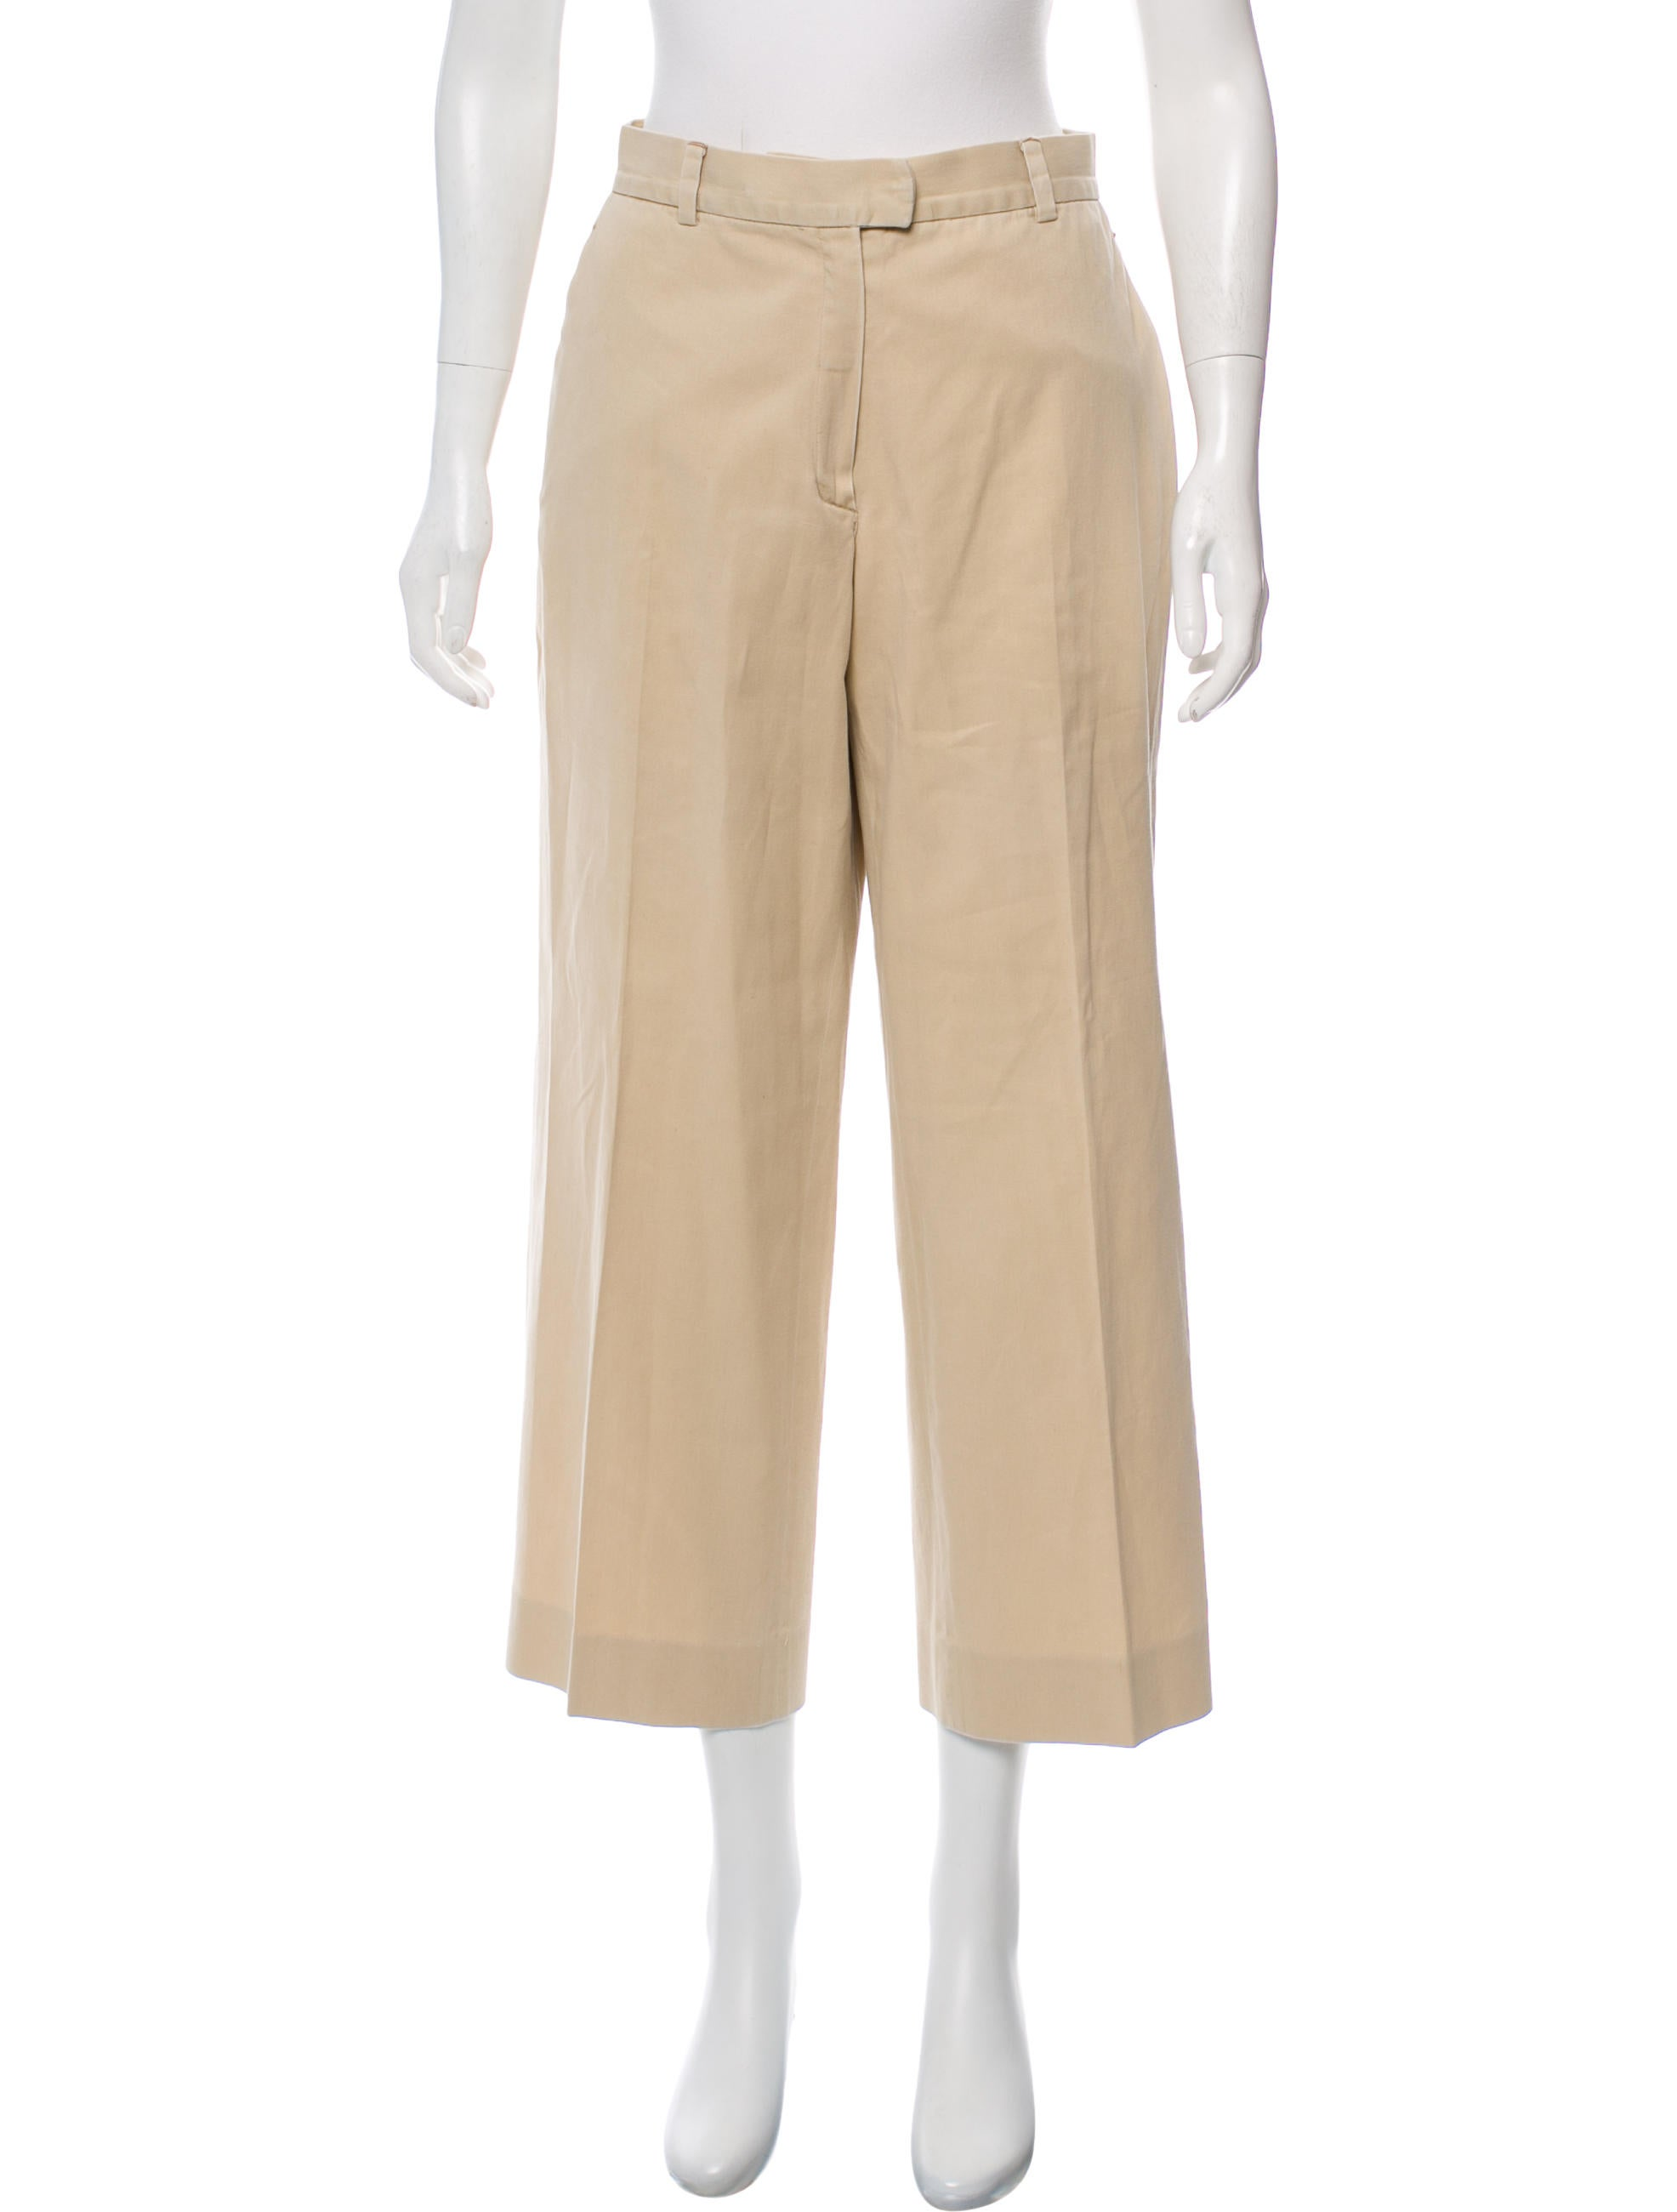 Very Cheap Kiton High-Rise Wide-Leg Pants How Much For Sale For Sale Wholesale Price Sale Explore Pu7bTkDzc4